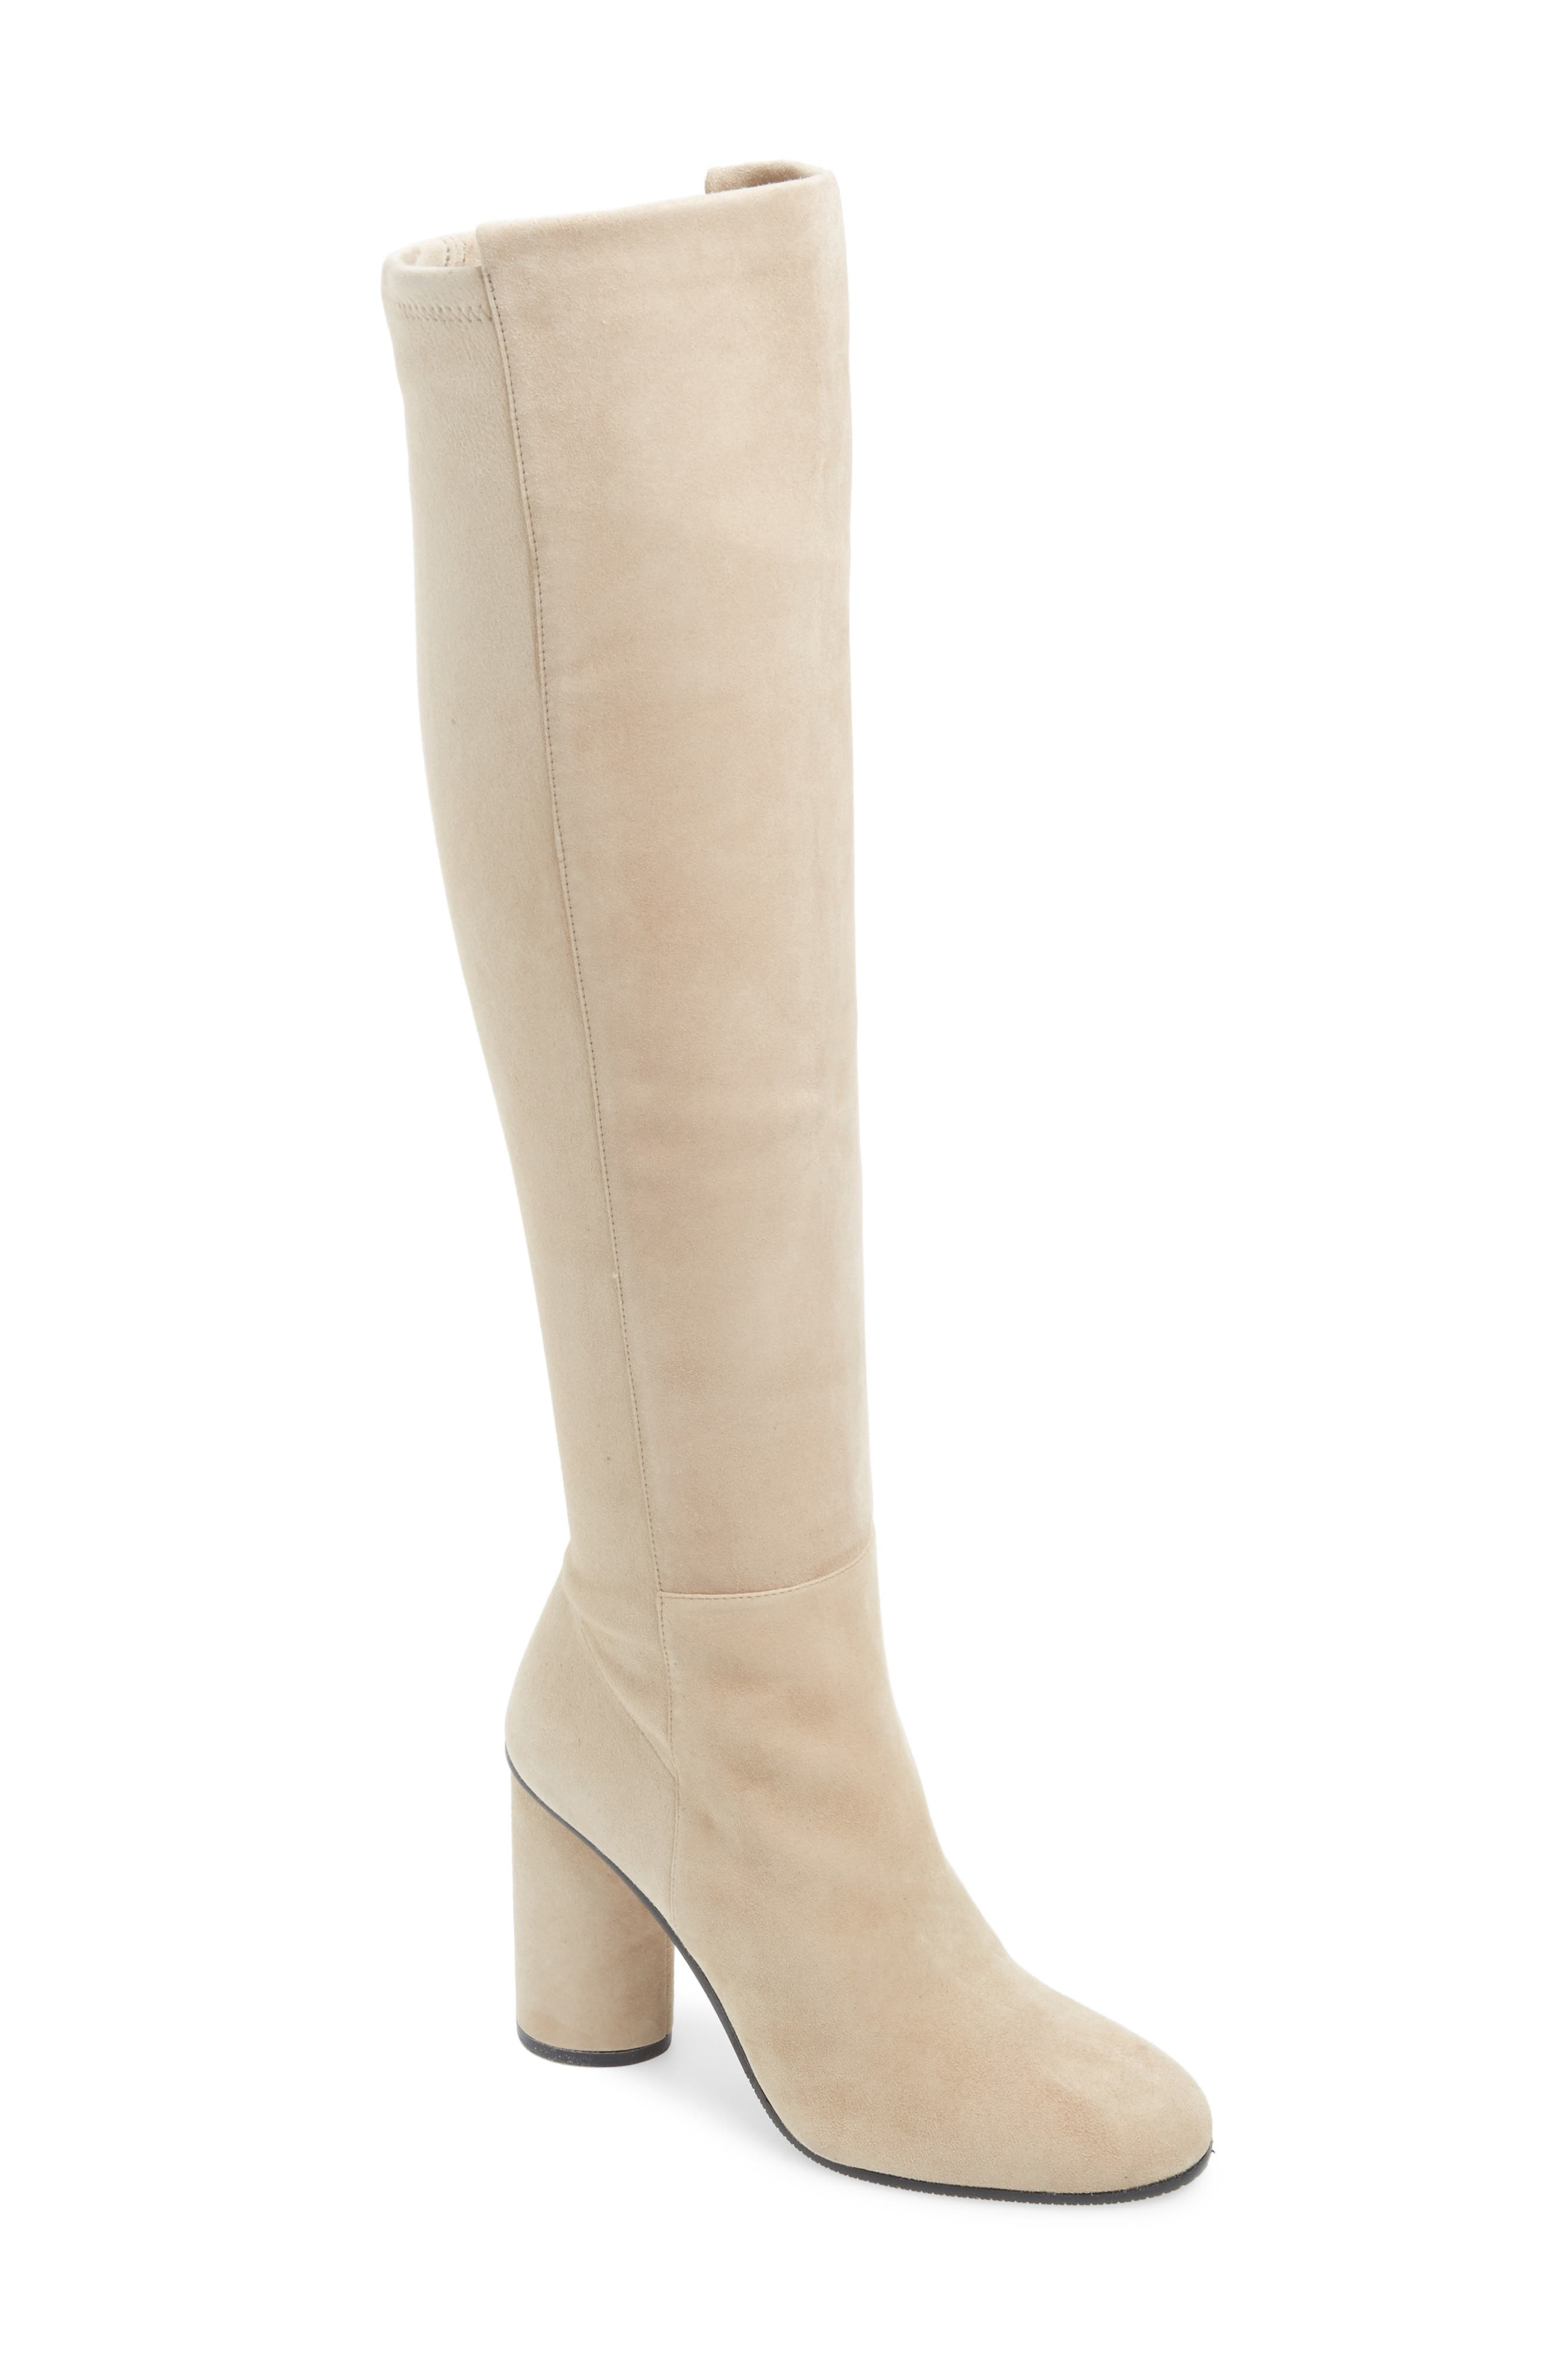 Eloise Over the Knee Boot,                         Main,                         color, BROWNSTONE SUEDE